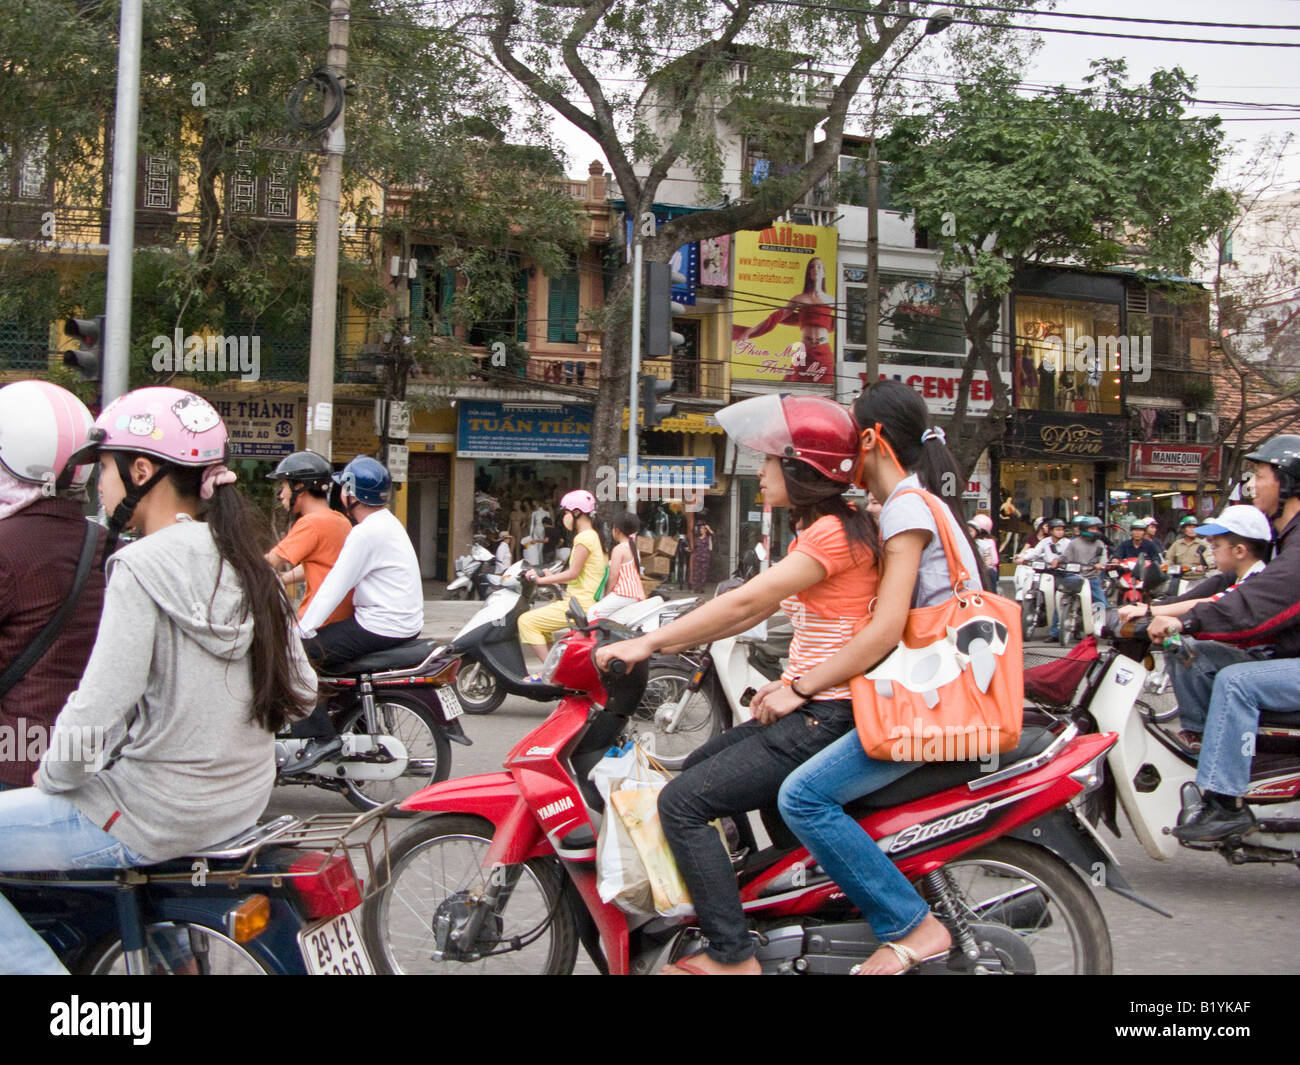 motorbike traffic in busy street in Hanoi, Vietnam - Stock Image